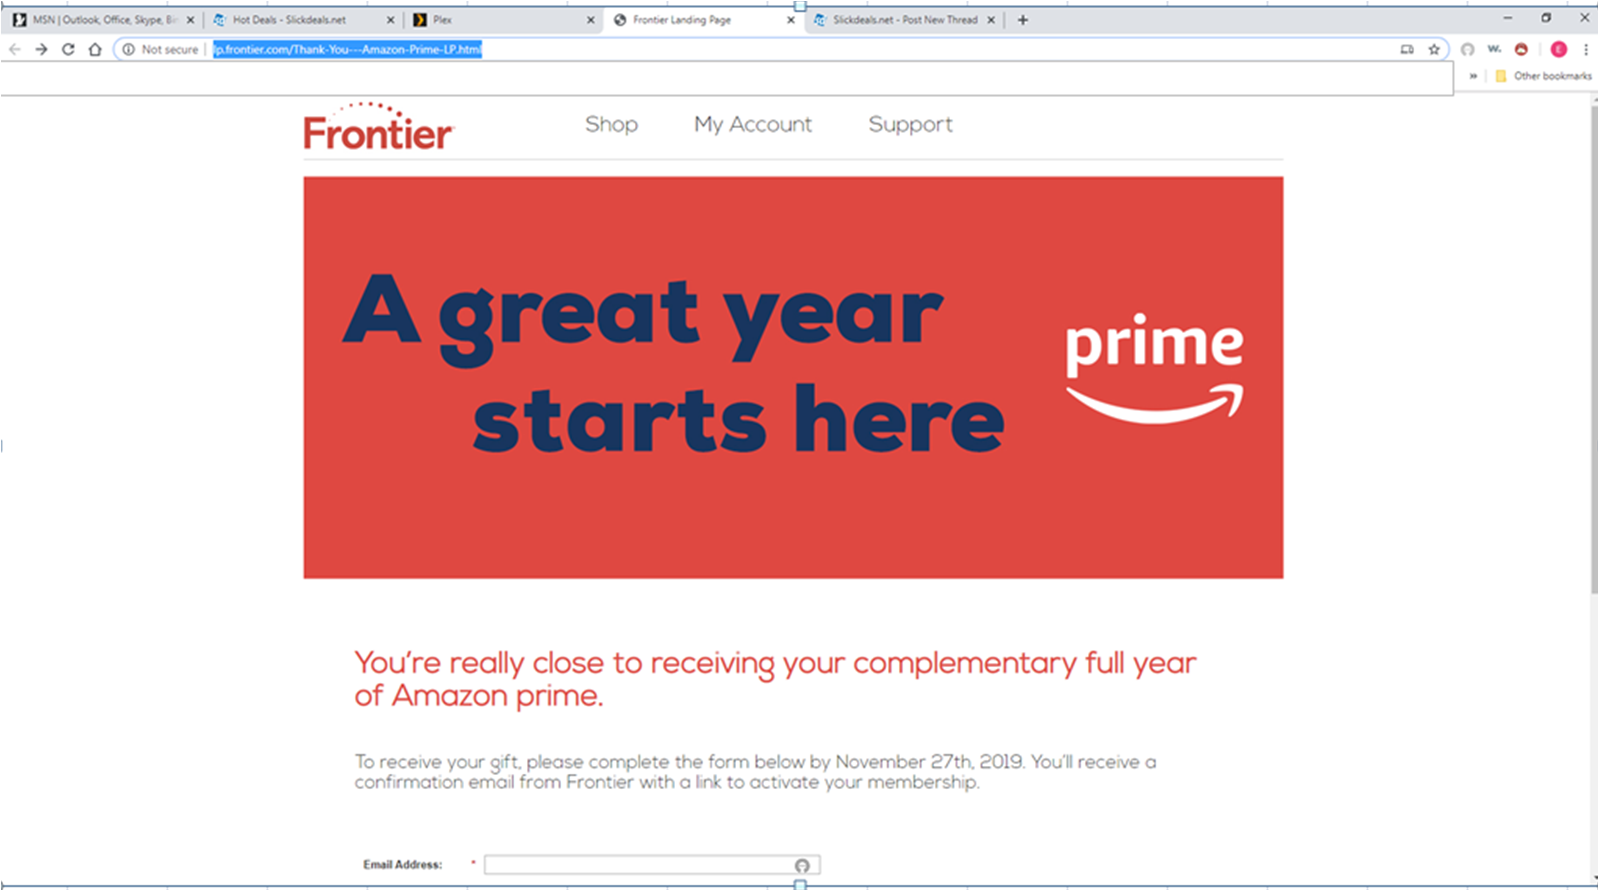 PSA - Free Amazon Prime for 1 year from Frontier - targeted email YMMV